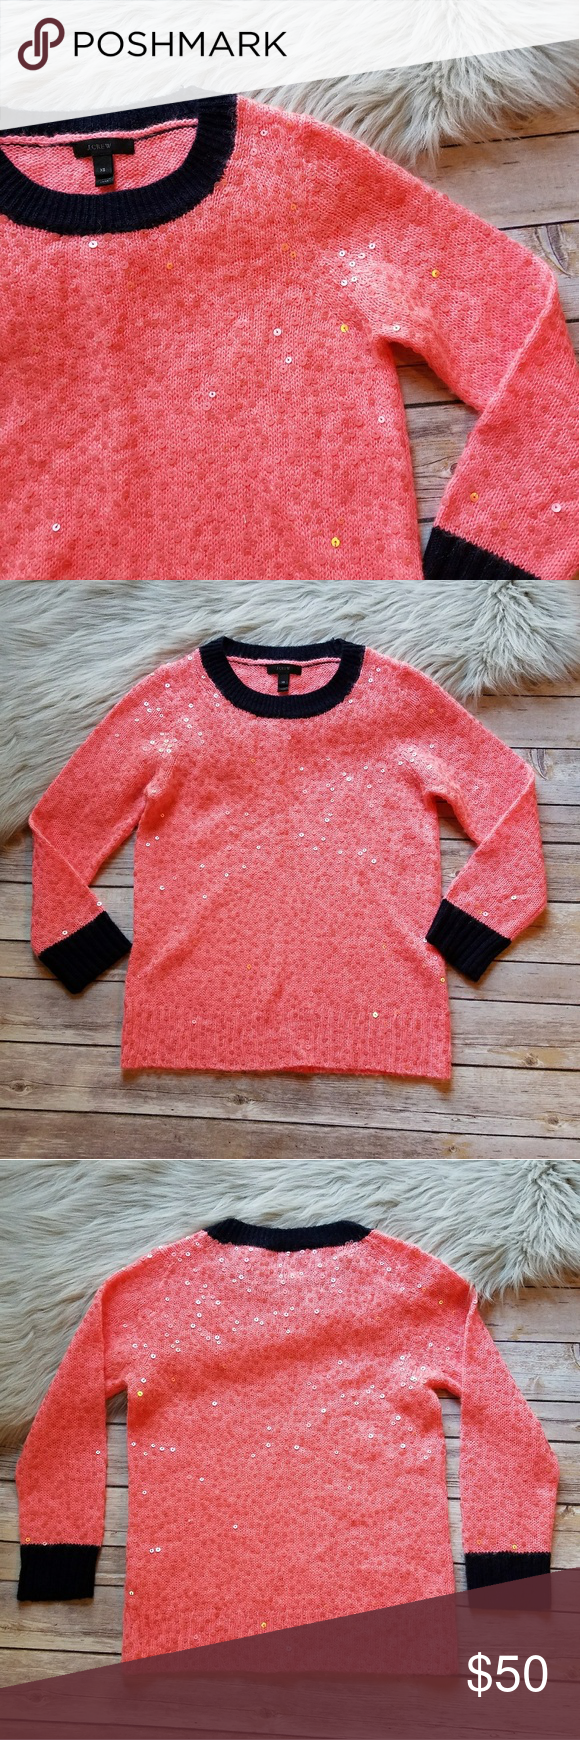 J. Crew pink peach sequin holiday sweater